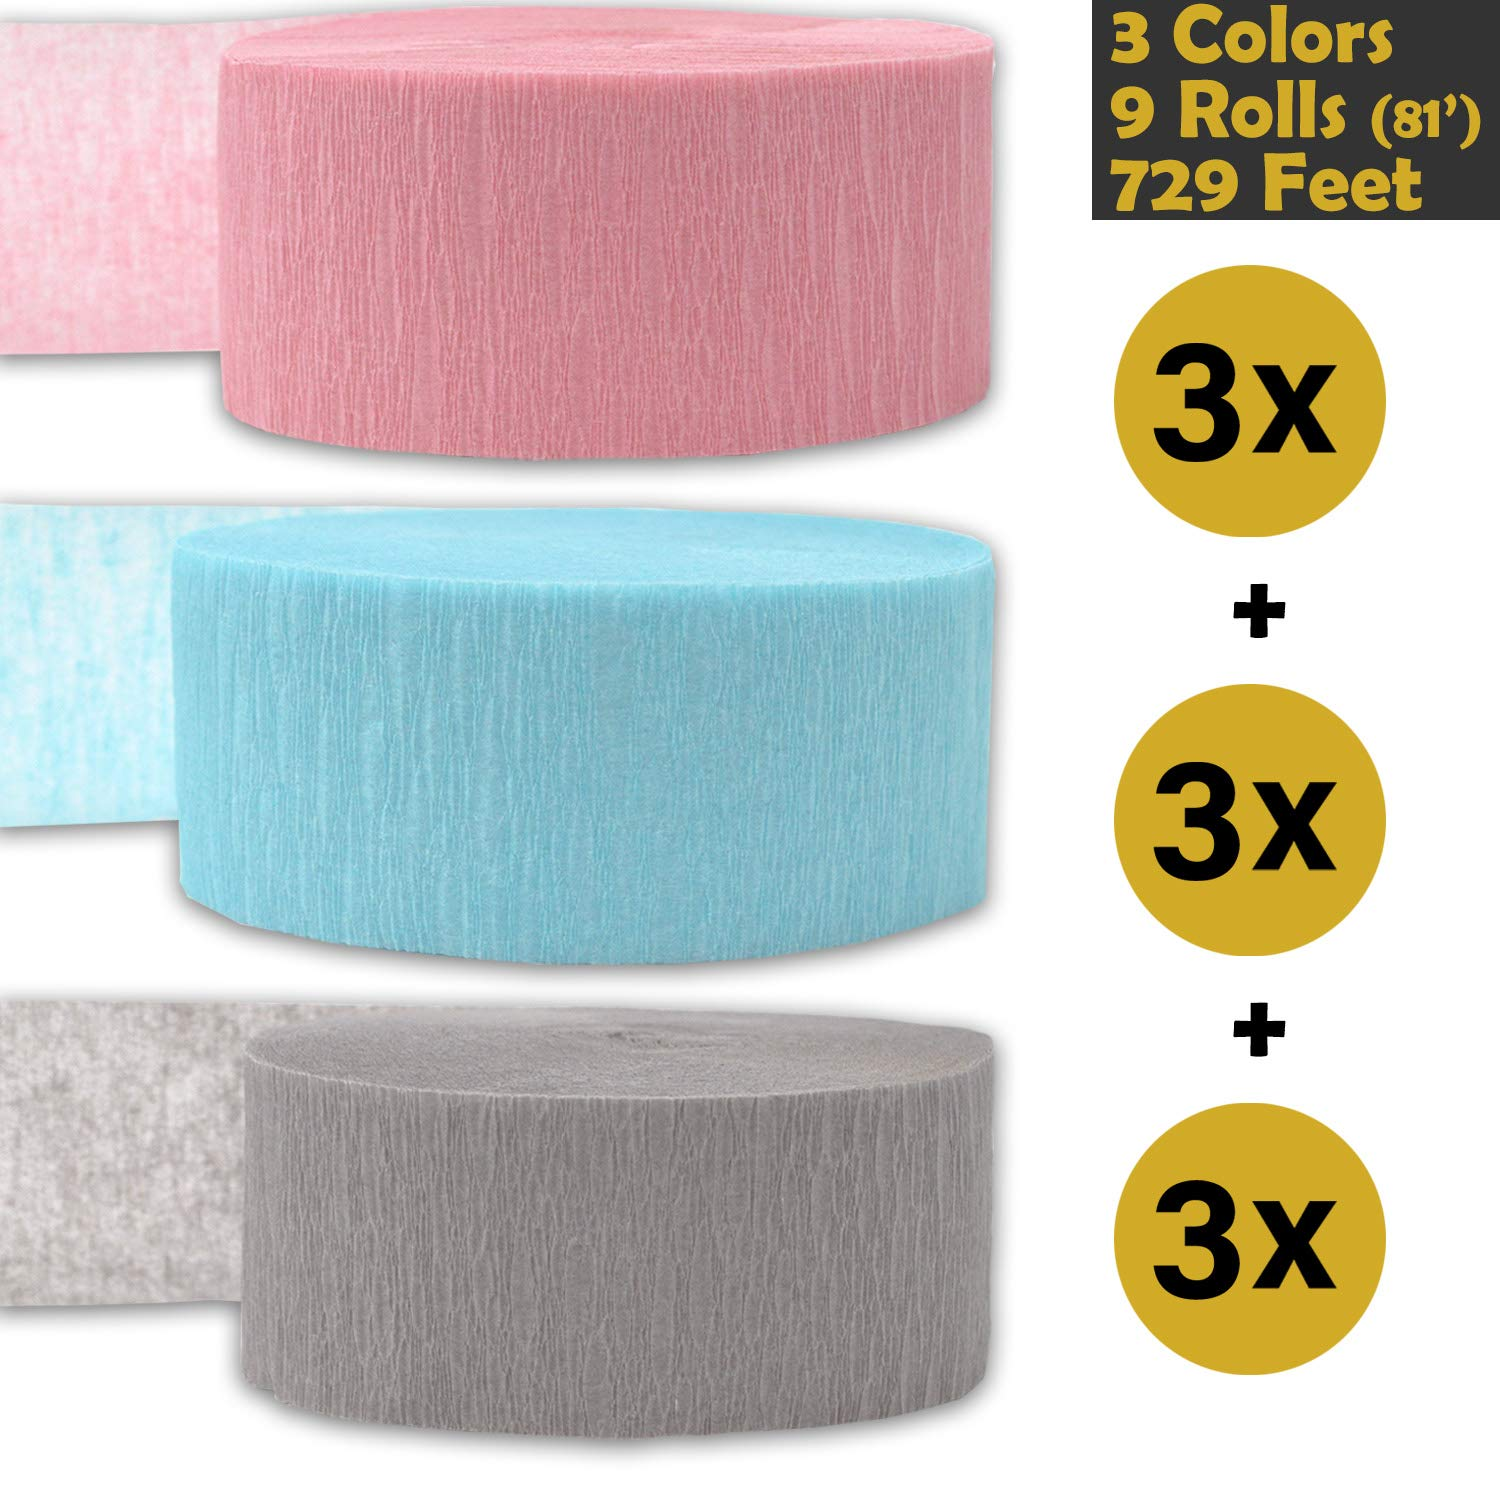 3 rolls per color, 81 foot each roll Crepe Party Streamers Classic Pink Bleed Resistant 9 rolls Flame Resistant 243 per color 3 Colors Gray Ice Blue - For party Decorations and Crafts 739 ft Made in USA